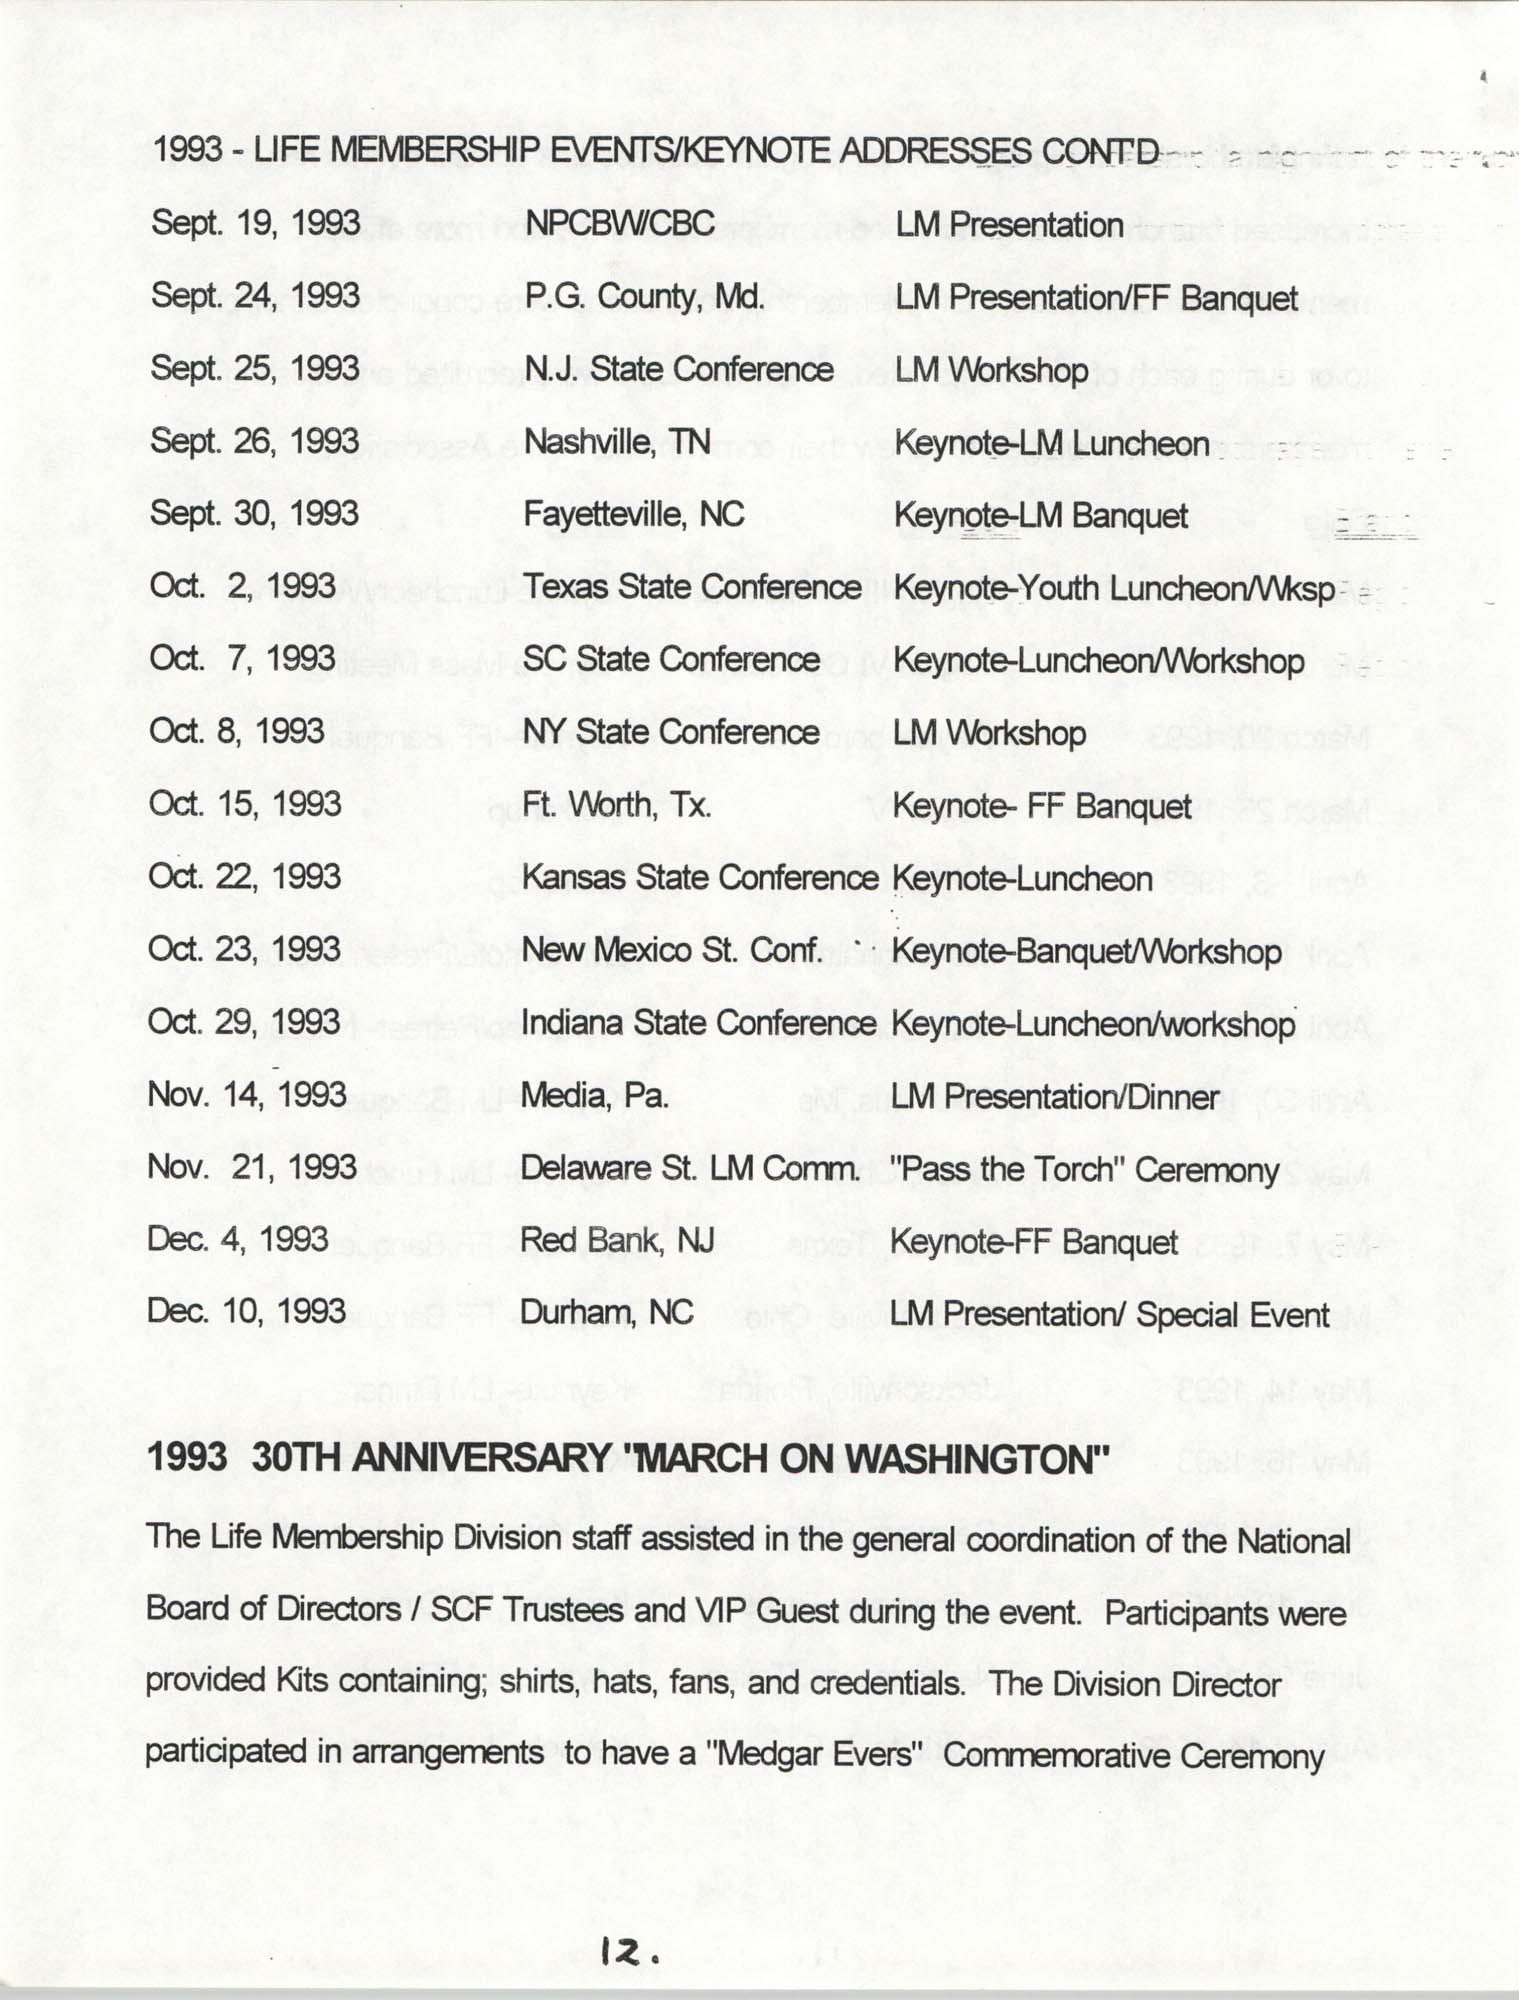 Life Membership Division, 1993 Annual Report, Page 12